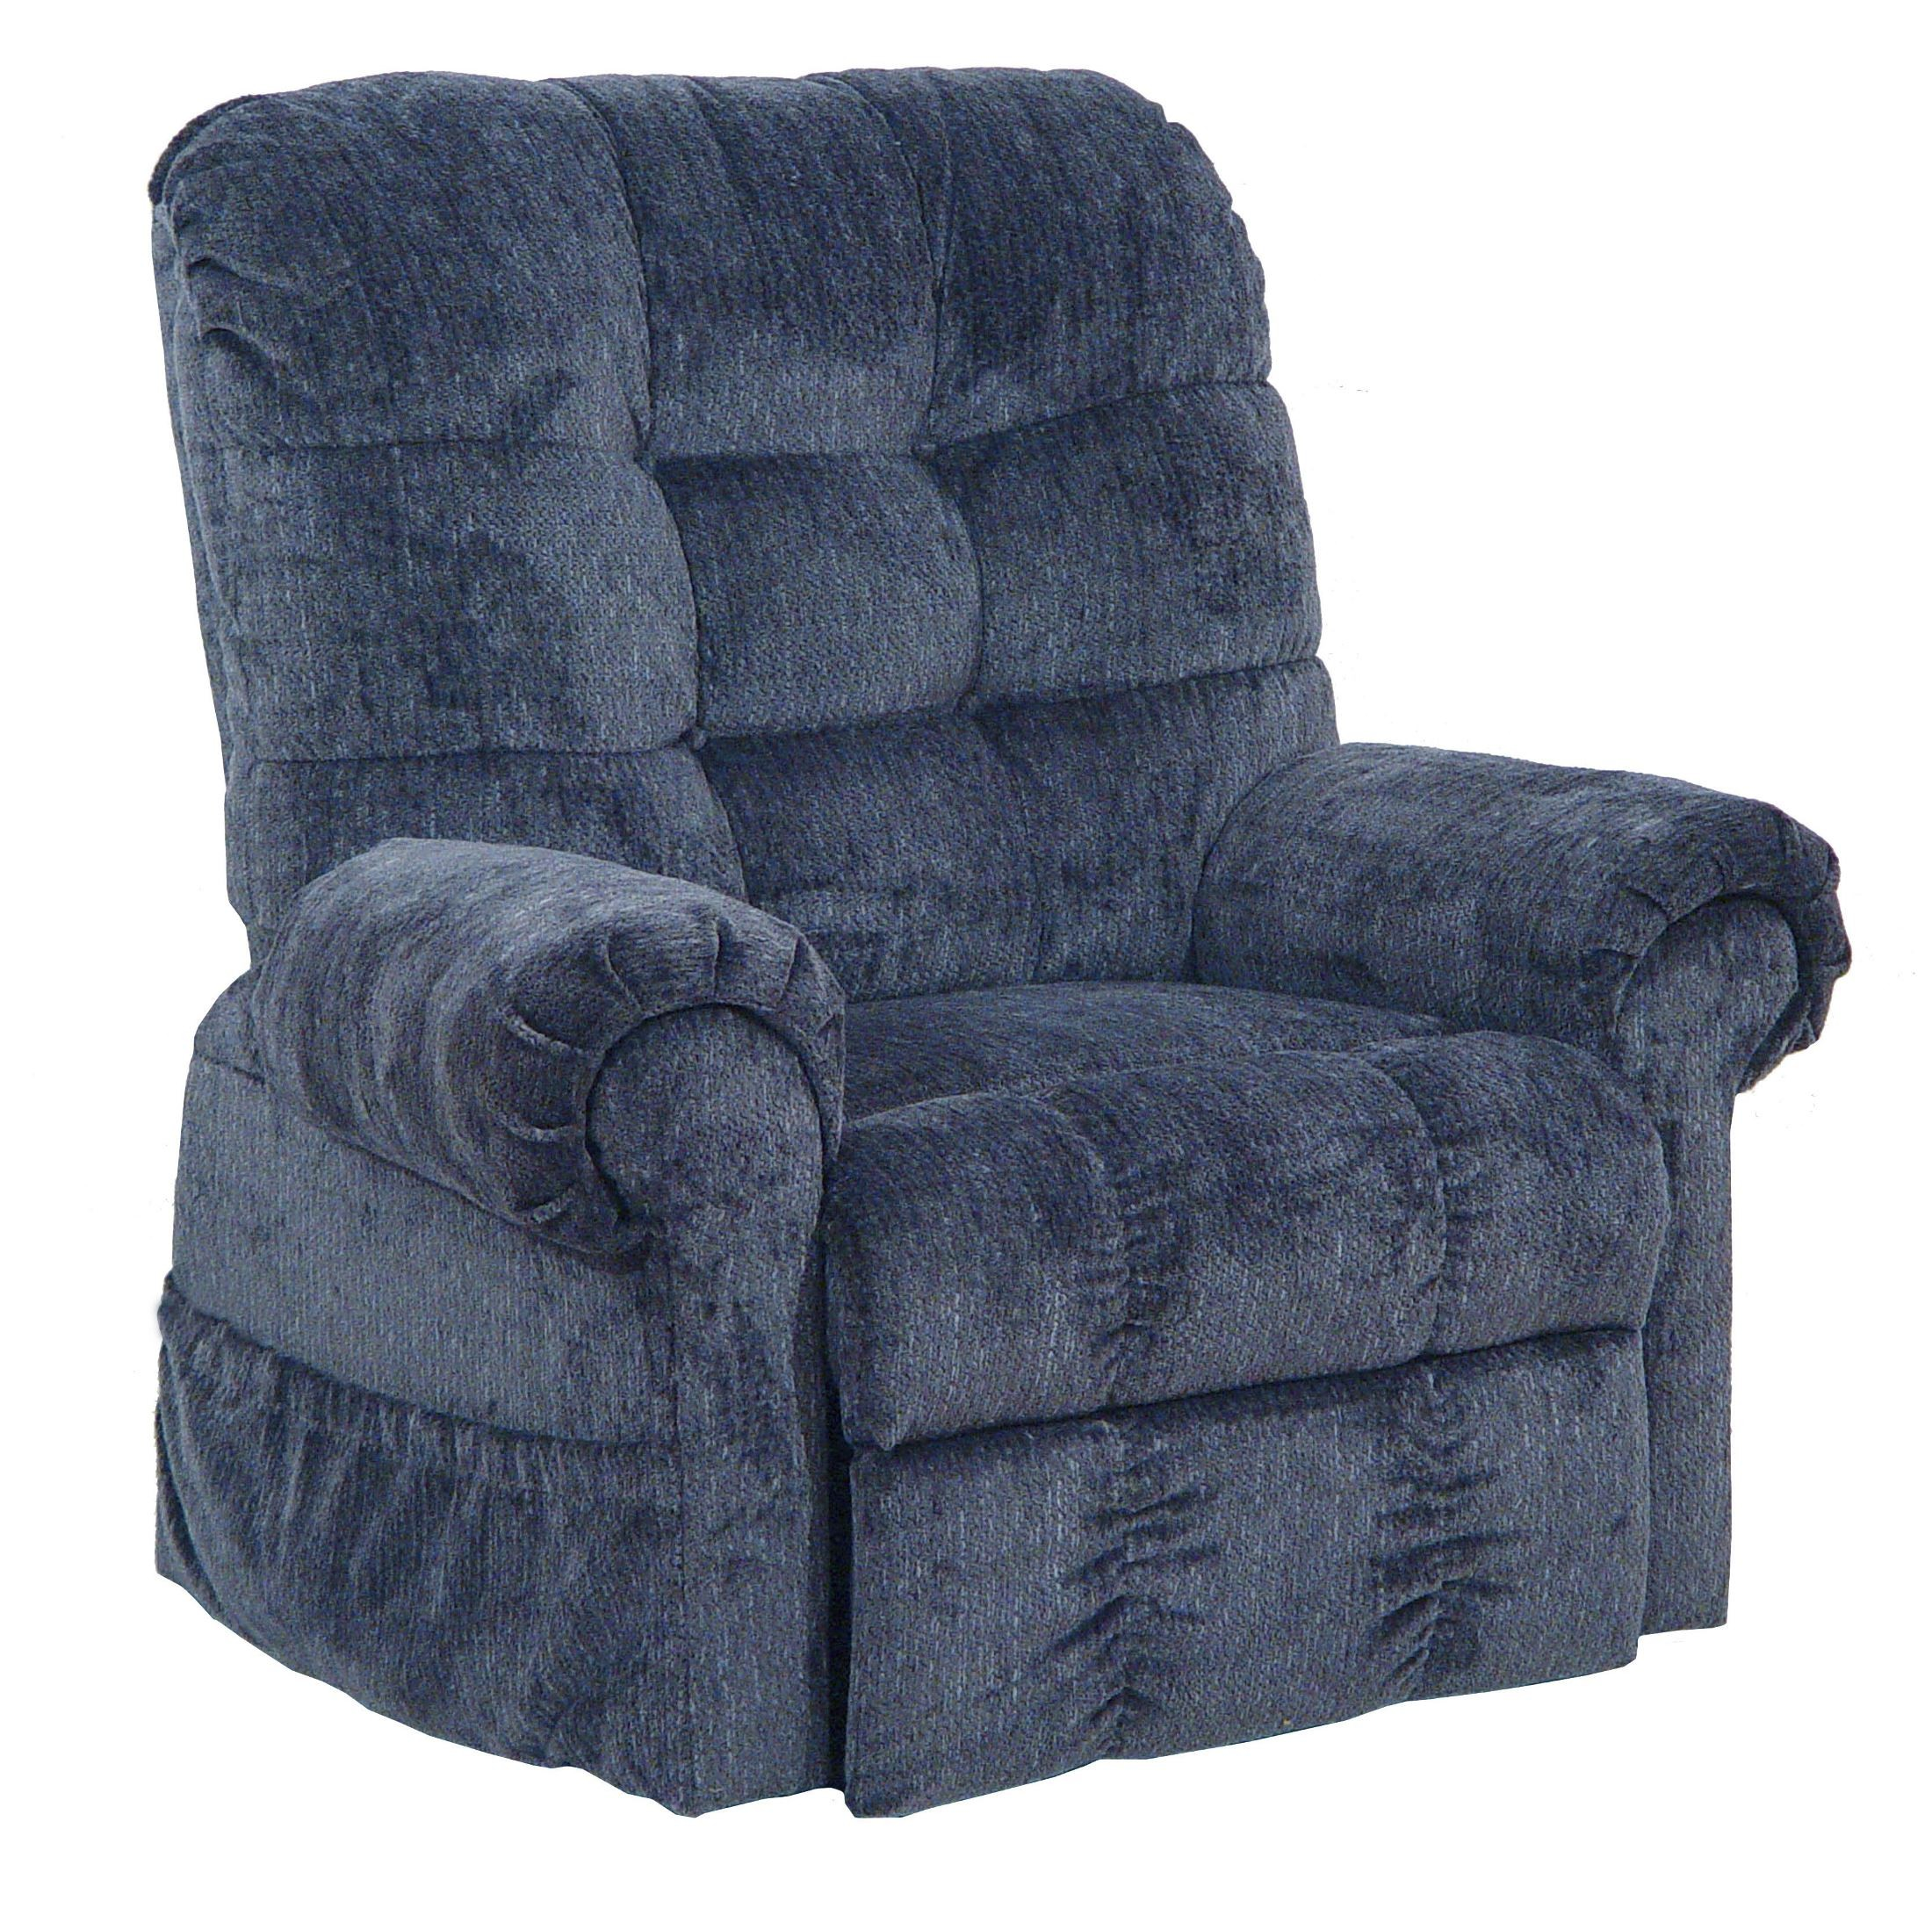 Omni black pearl power lift recliner from catnapper for Catnapper cloud nine chaise recliner